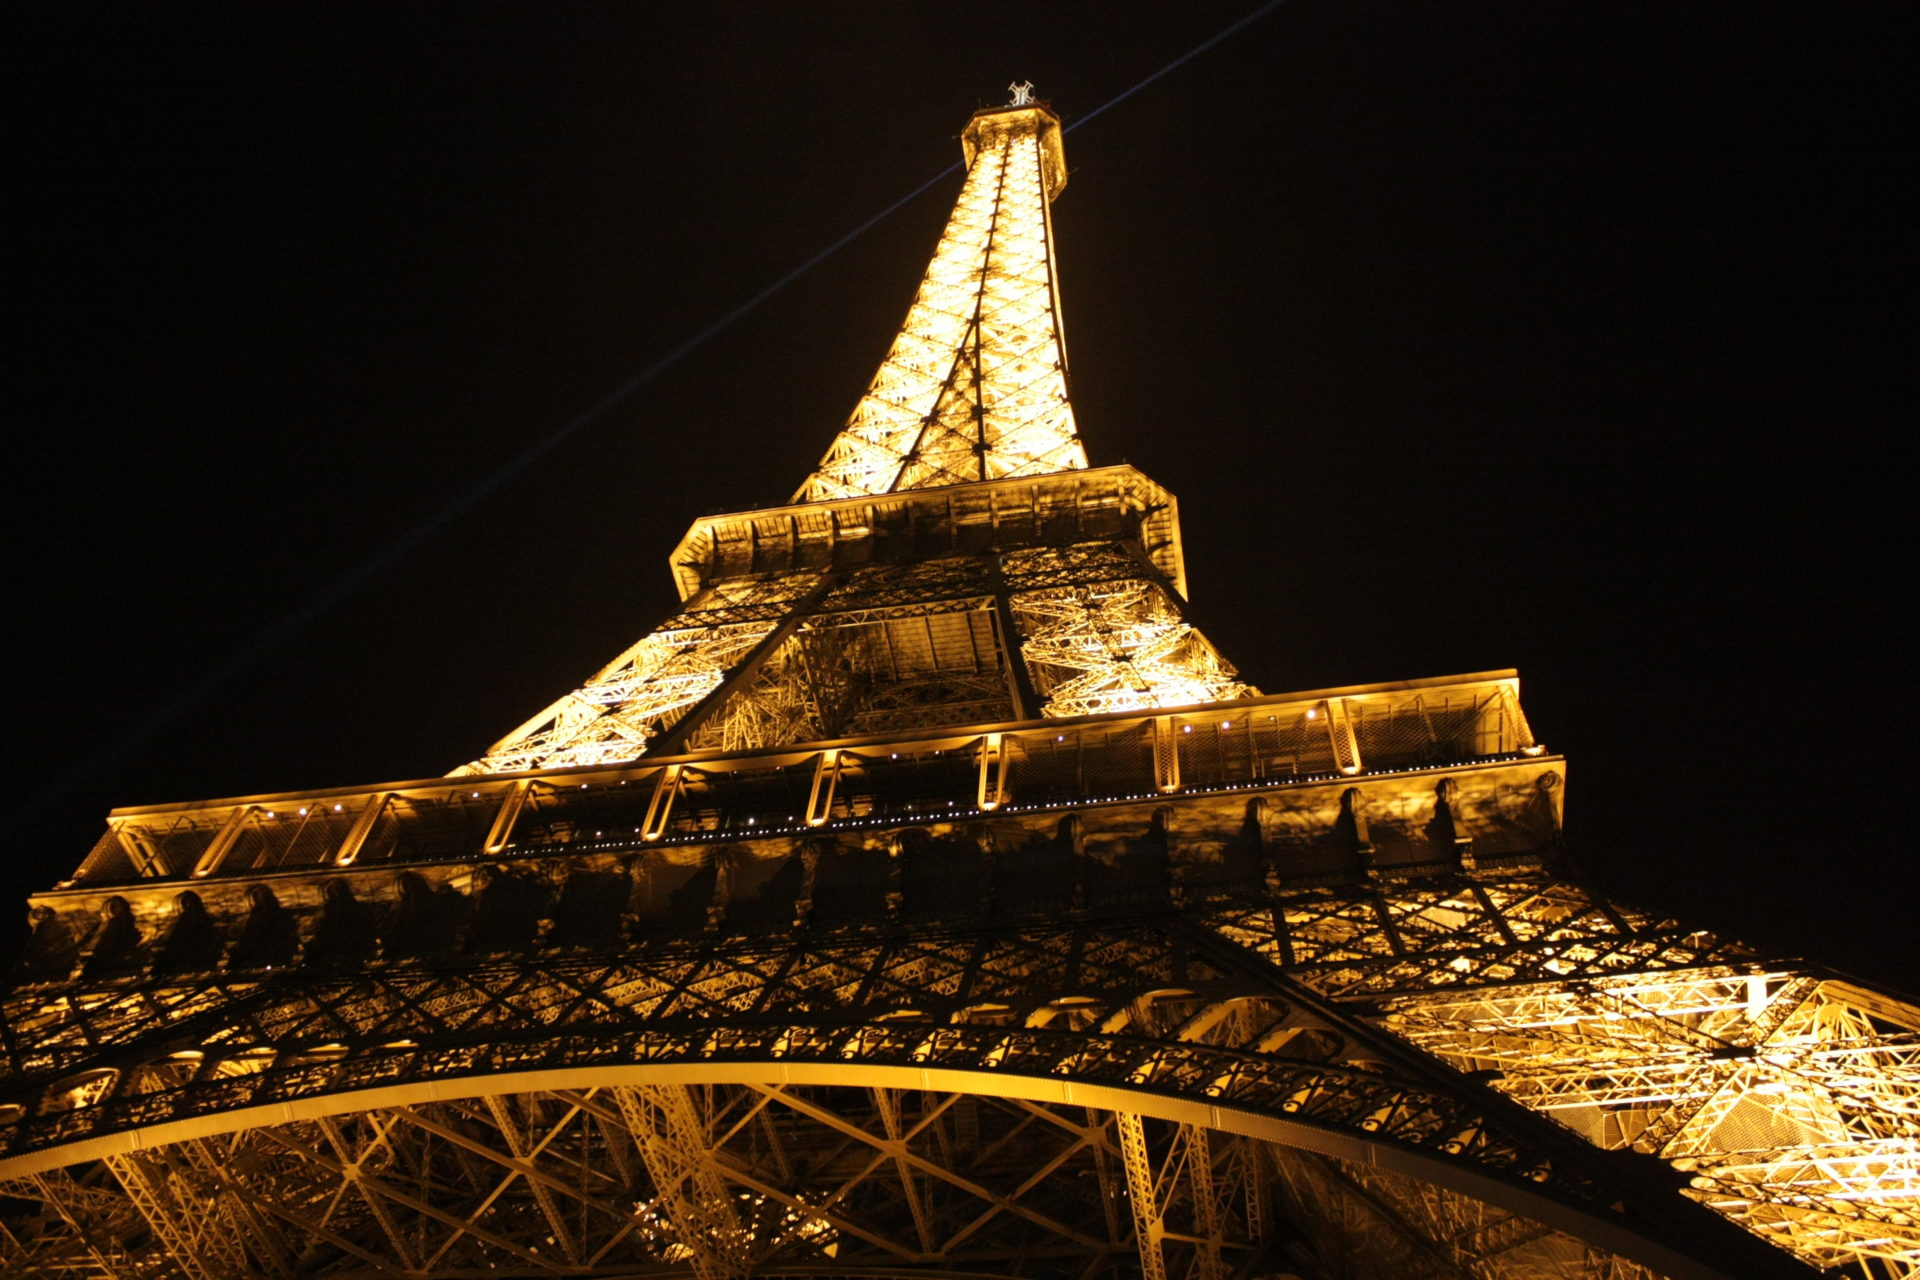 Tour Eiffel de Paris - Quoi faire?